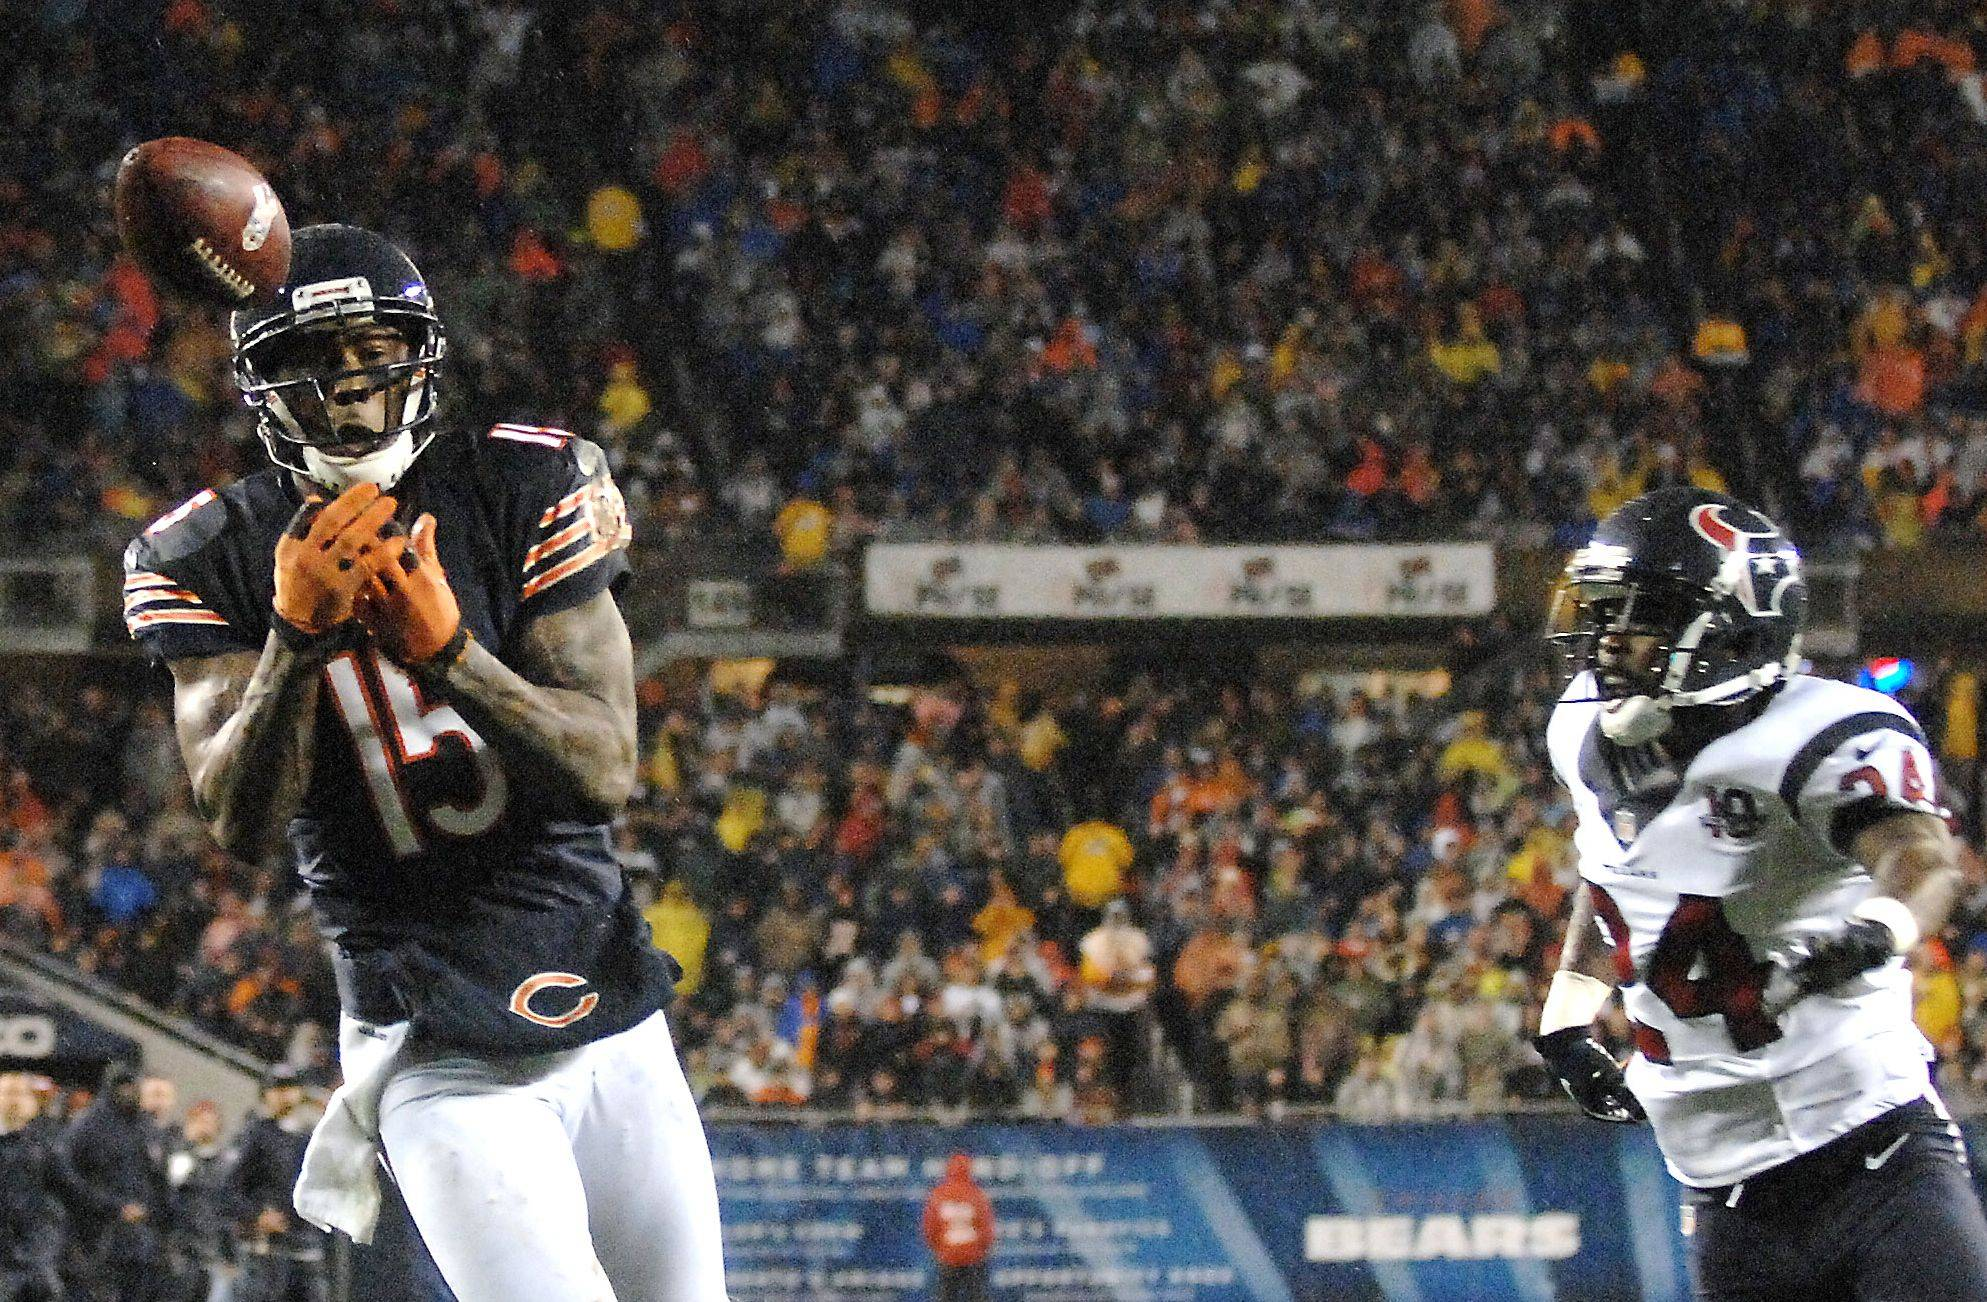 Brandon Marshall drops what appears to be a sure touchdown during the second quarter after beating cornerback Johnathan Joseph on Sunday at Soldier Field.